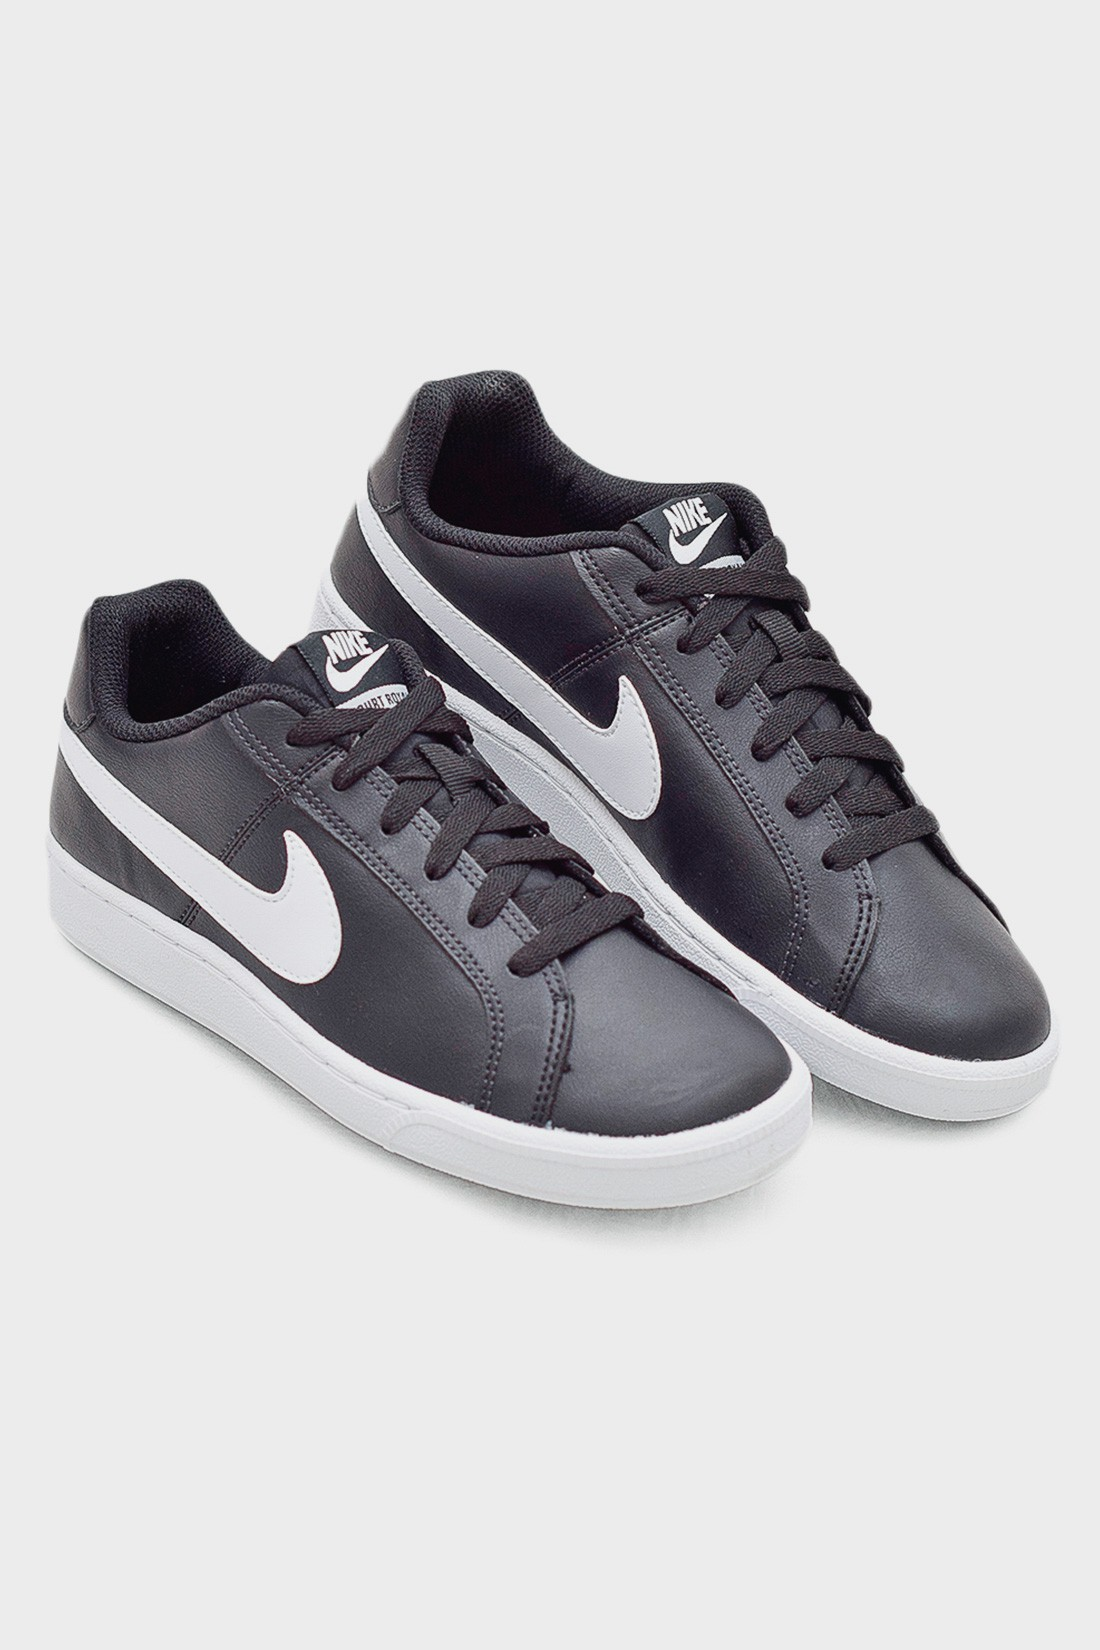 Tenis Casual Nike Court Royale